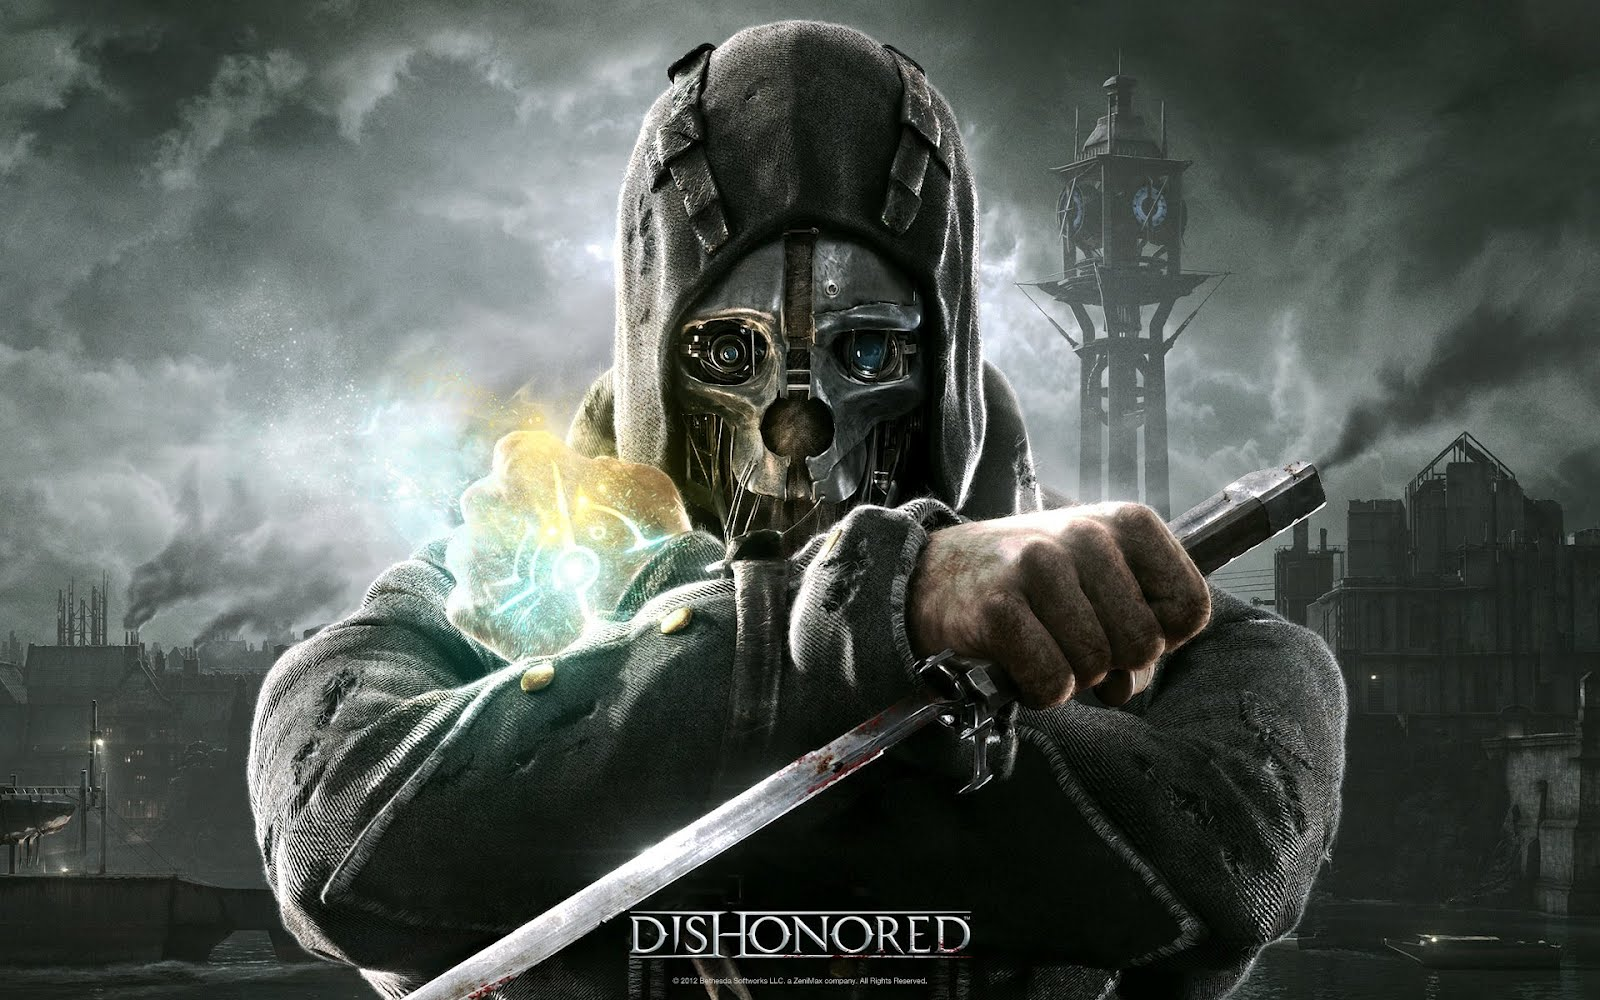 Dishonored Stealth Trailer